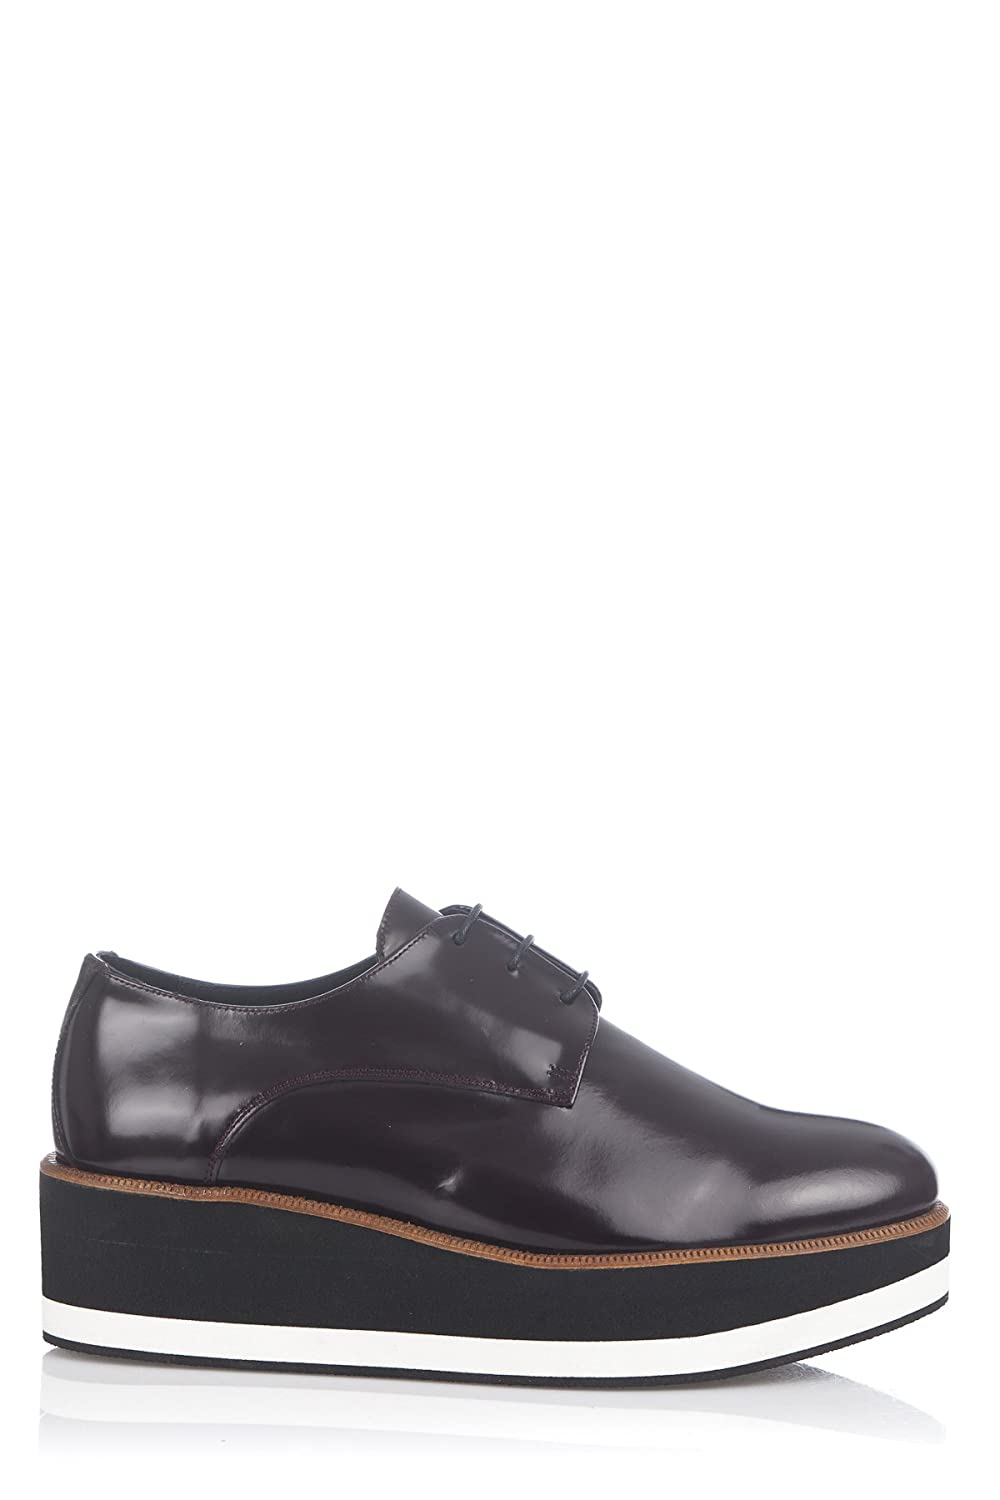 Laura Moretti Bugy Shoes, Shoes, Shoes, Creepers Donna- c0affc